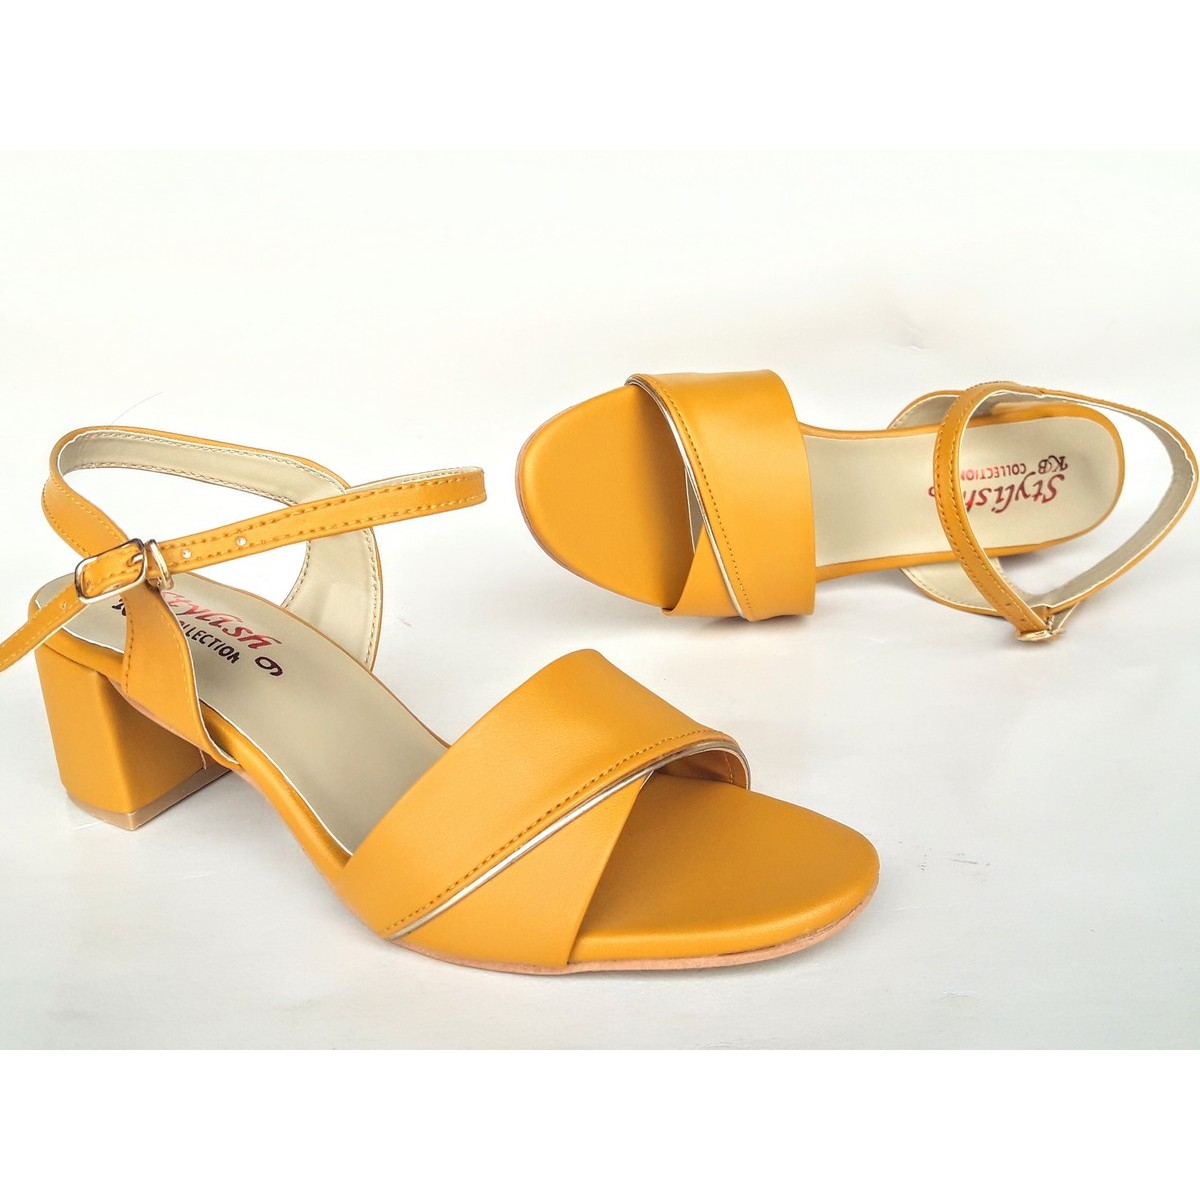 Stylish Pazaib Shoes Small Heel Sandals For Women